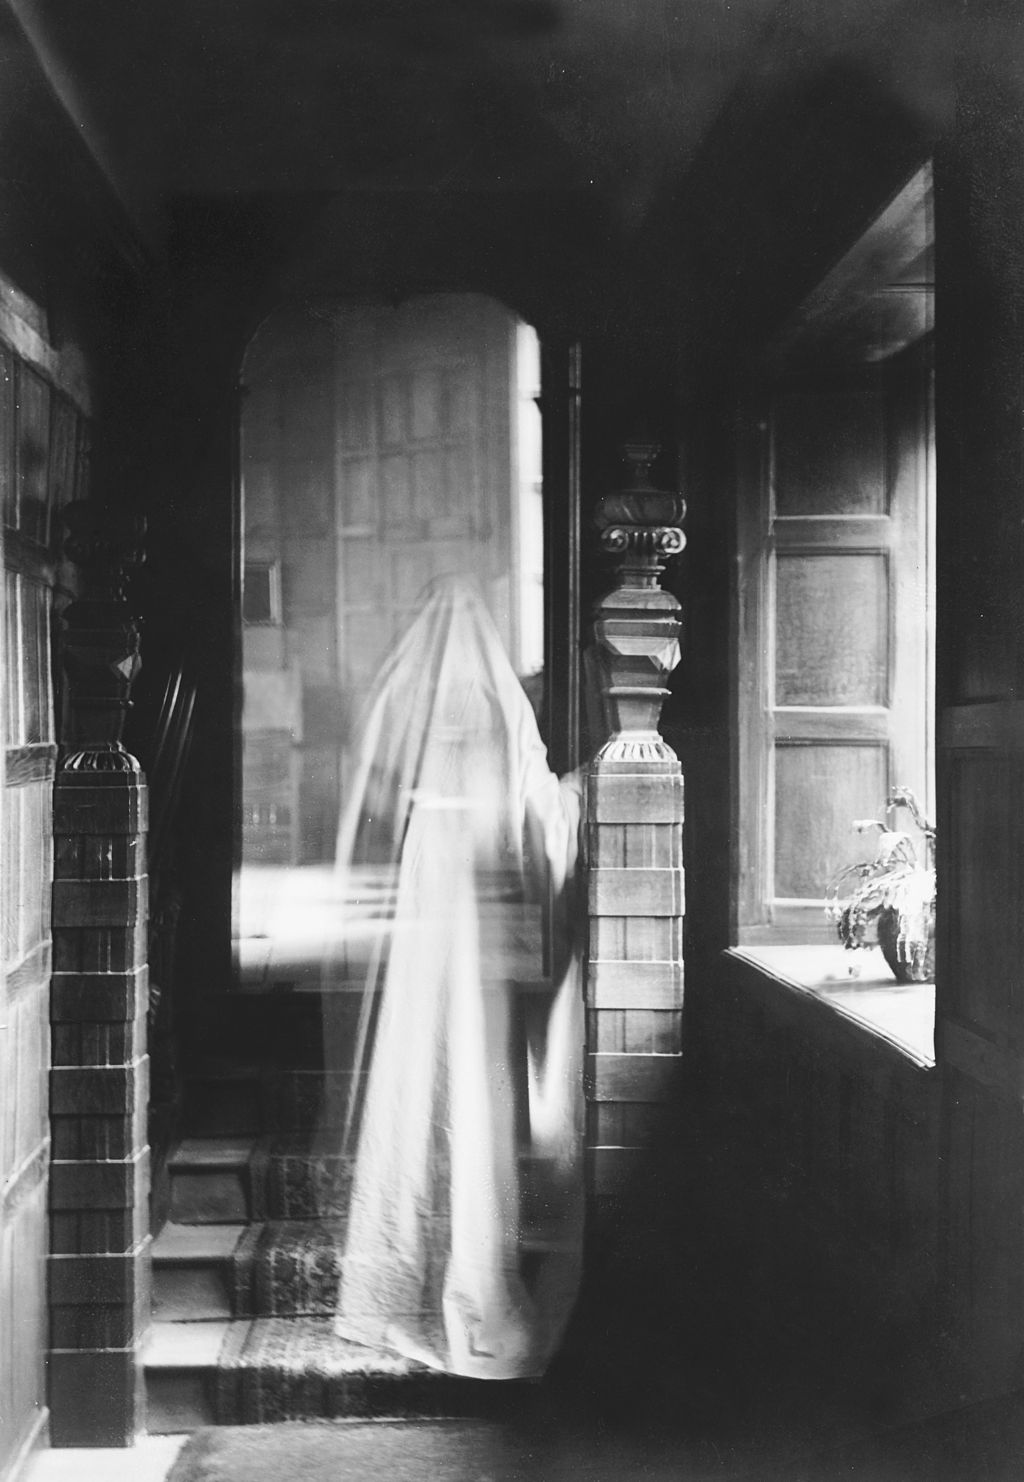 Polls and surveys show that 42% of Americans believe in ghosts and many are uncertain about the existence of many paranormal phenomena.   The National Archives UK/Flickr (public domain)